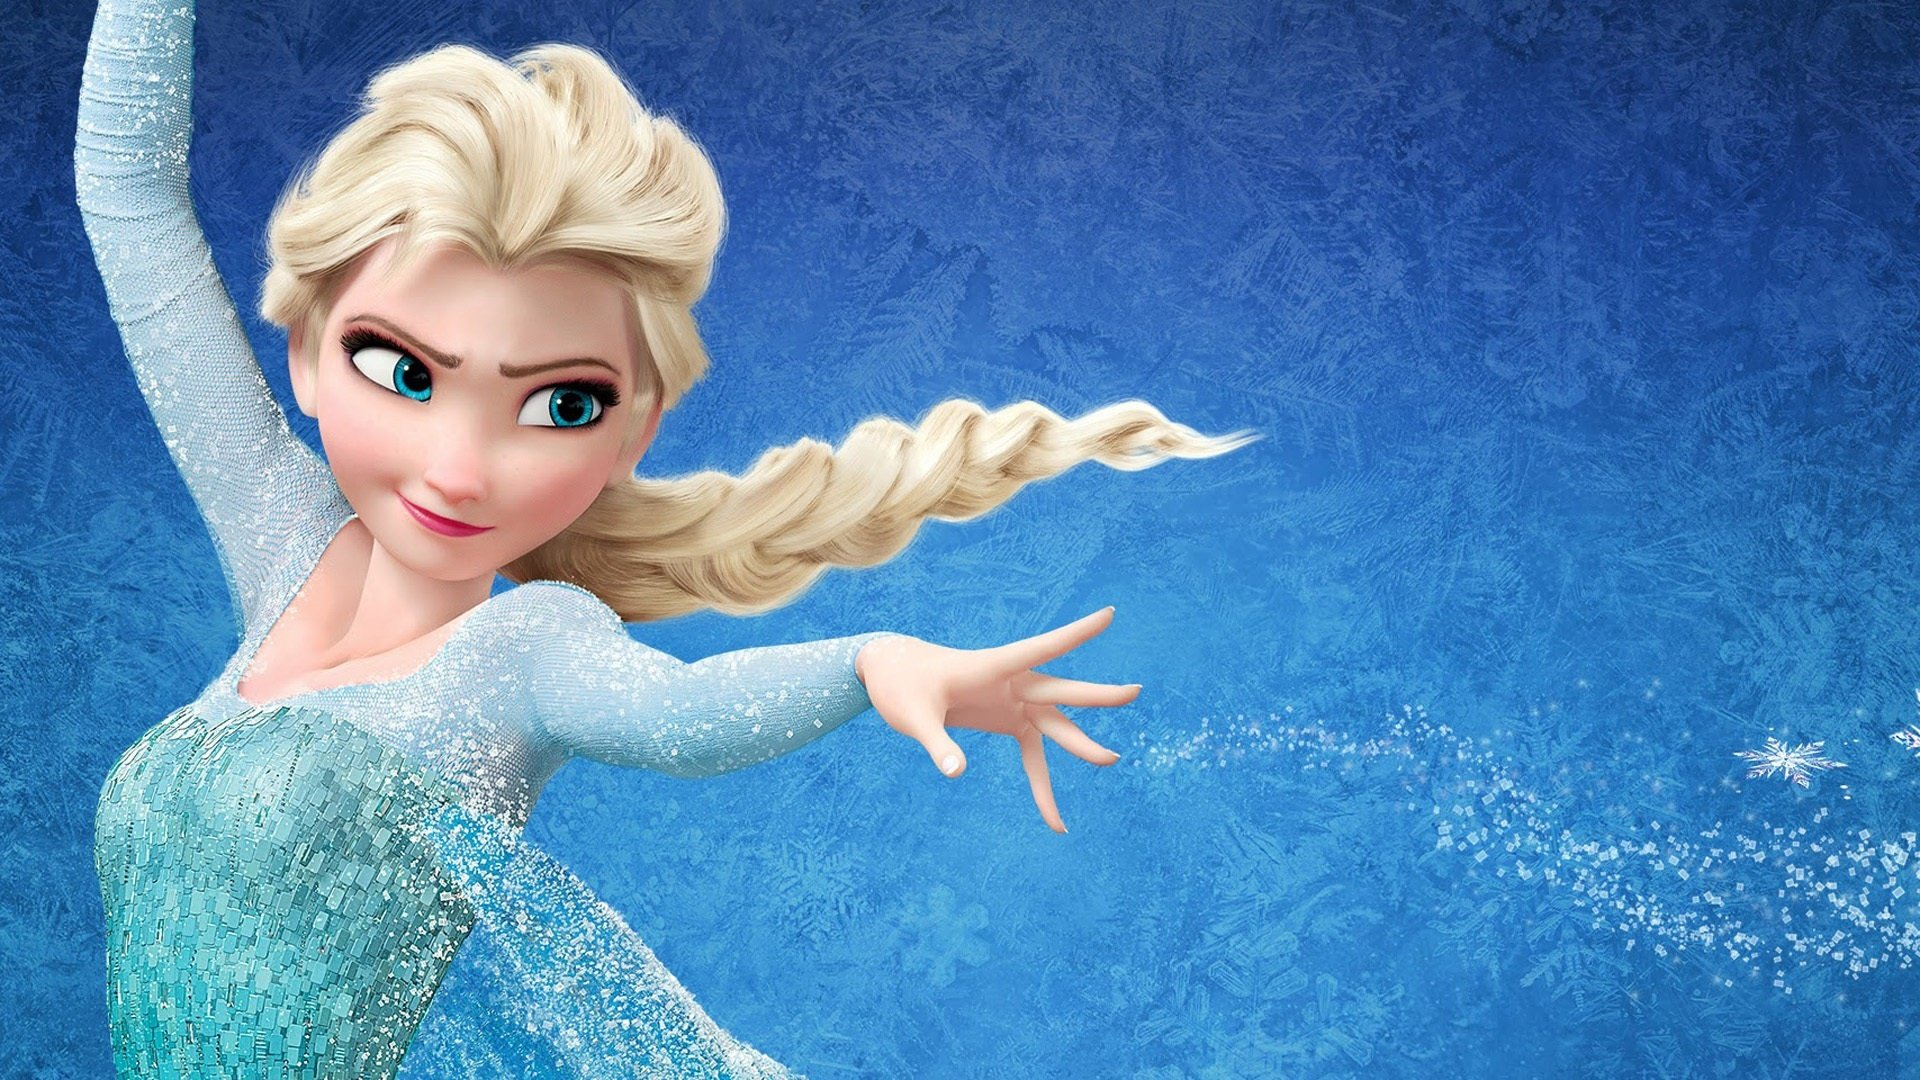 Fans Want Frozen 2 to Have A Historical Twist